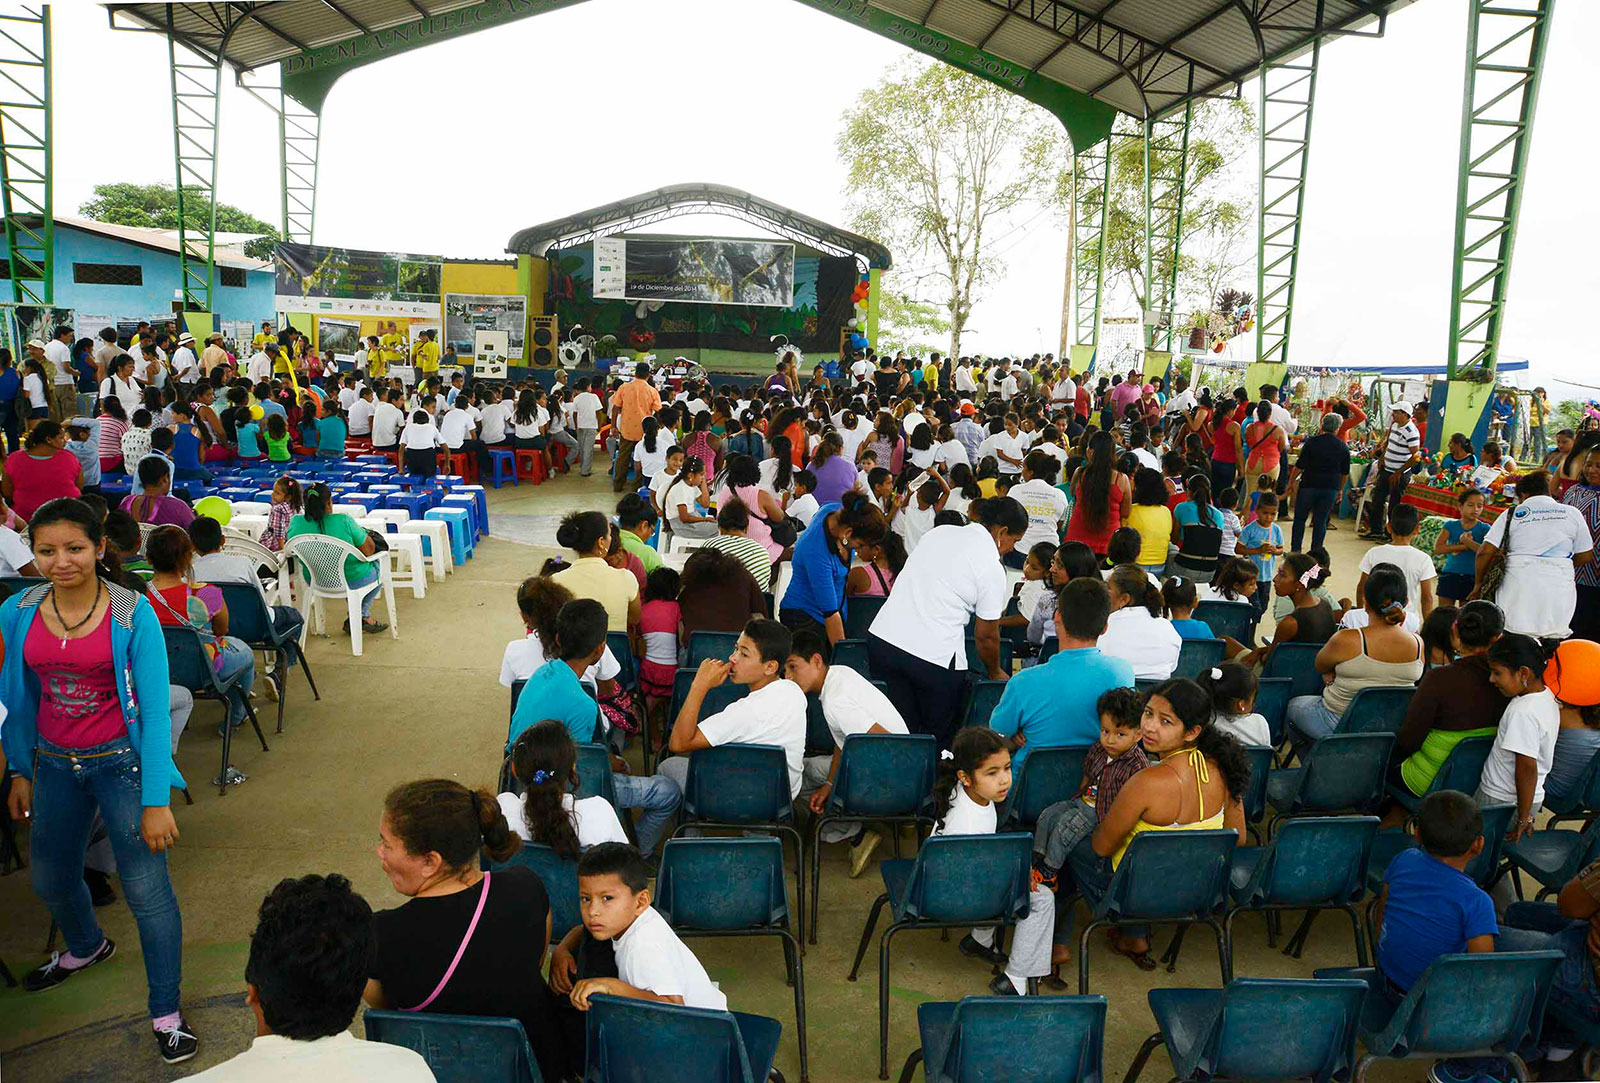 The stage and crowd at a large gathering under a pavillion